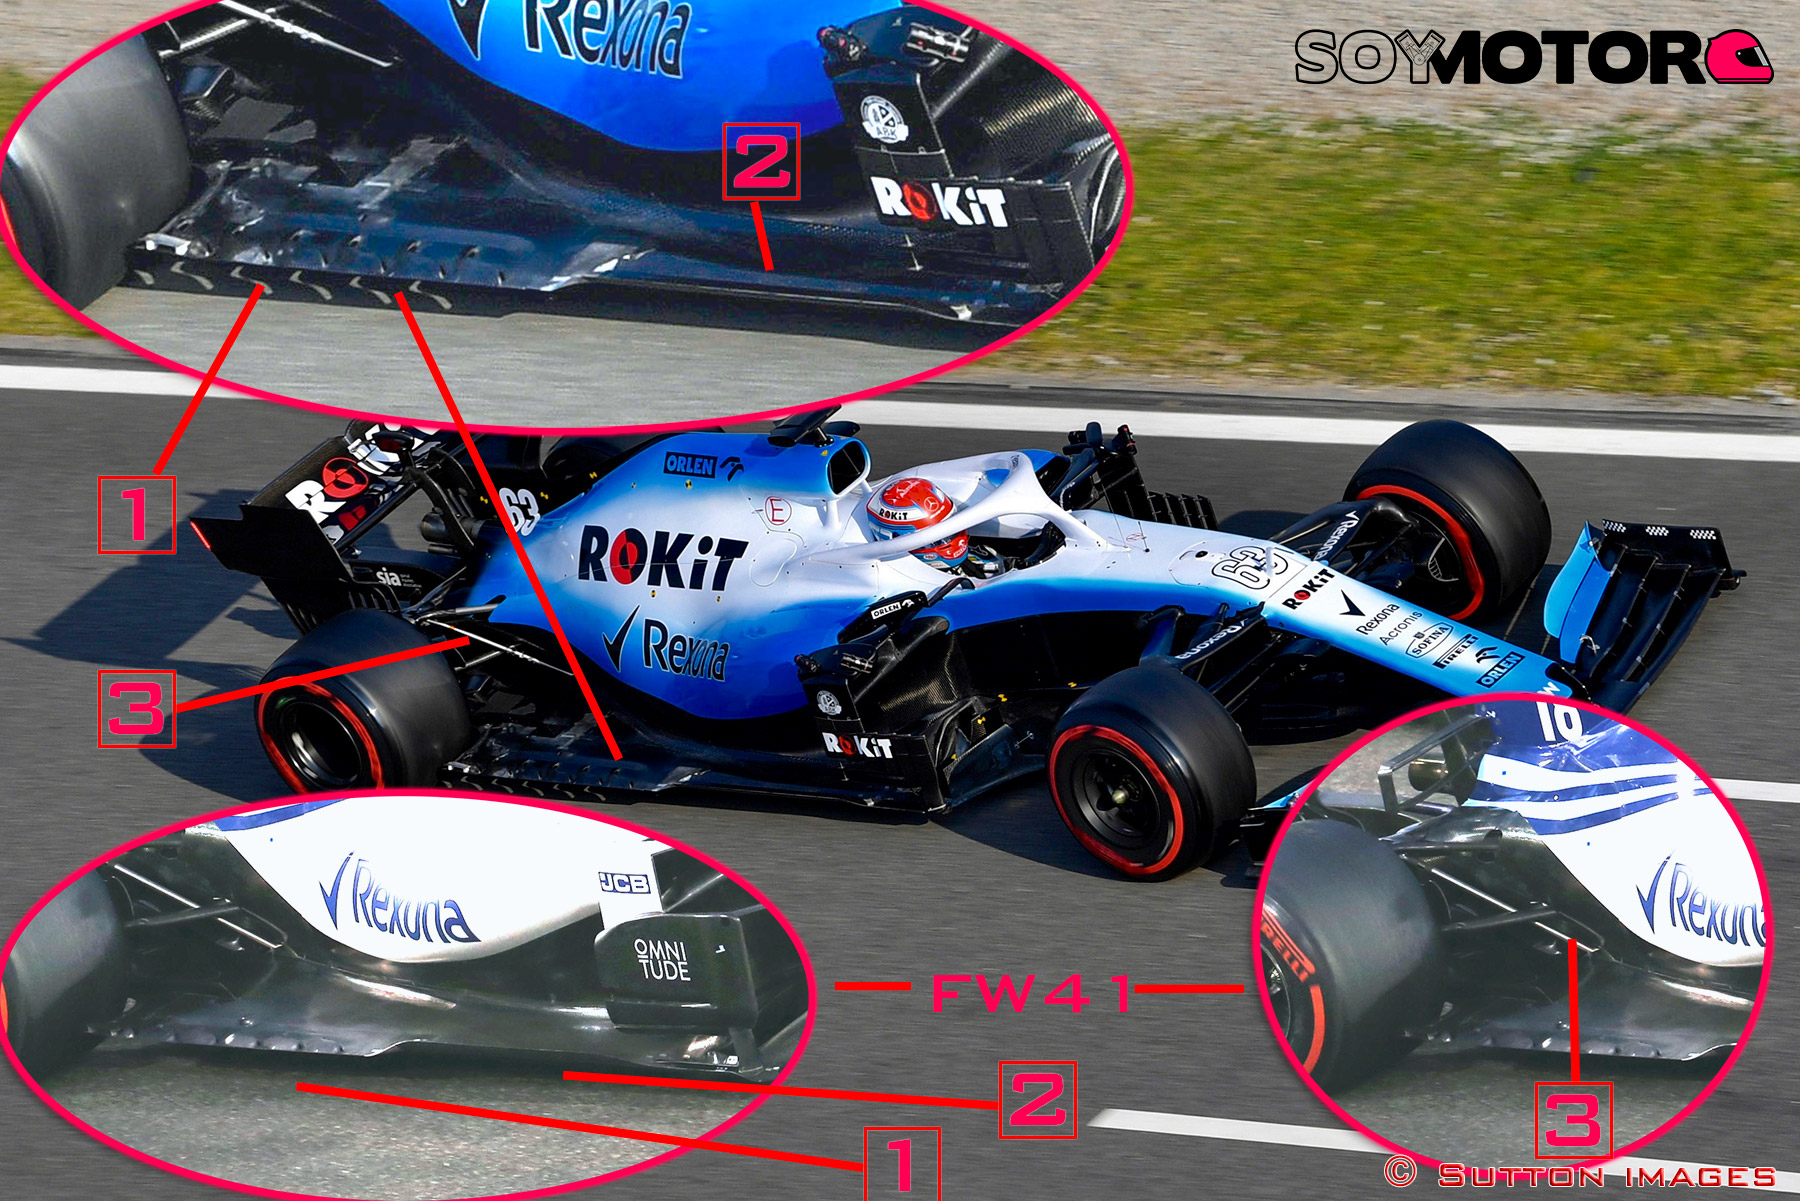 williams-suelo-y-suspension-trasera.jpg